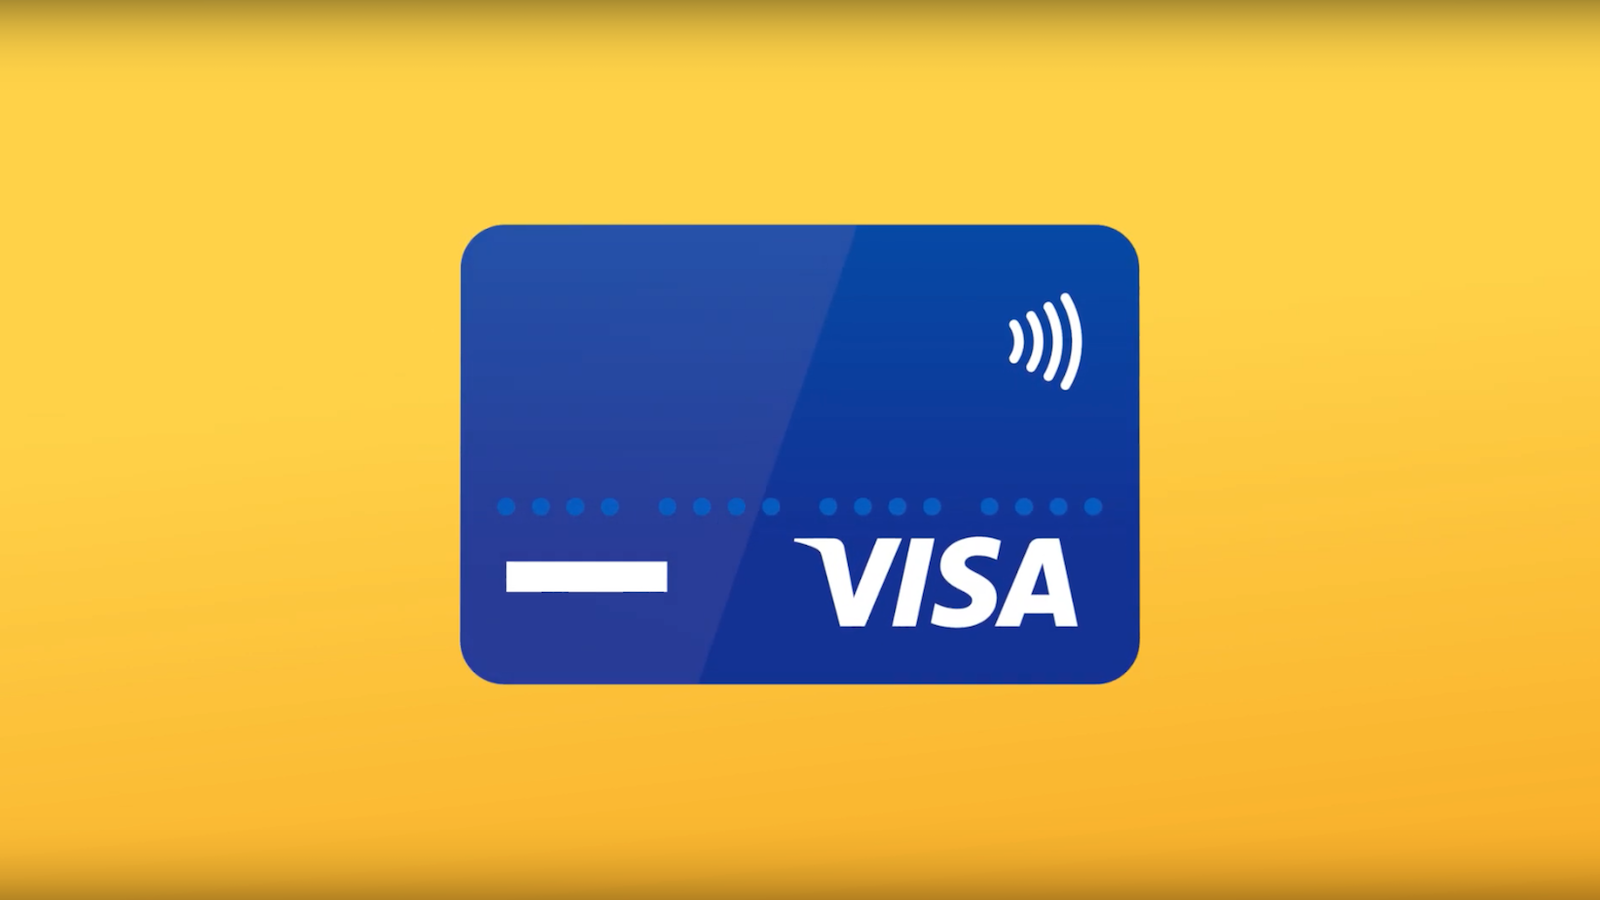 Blue Visa card against a yellow background.